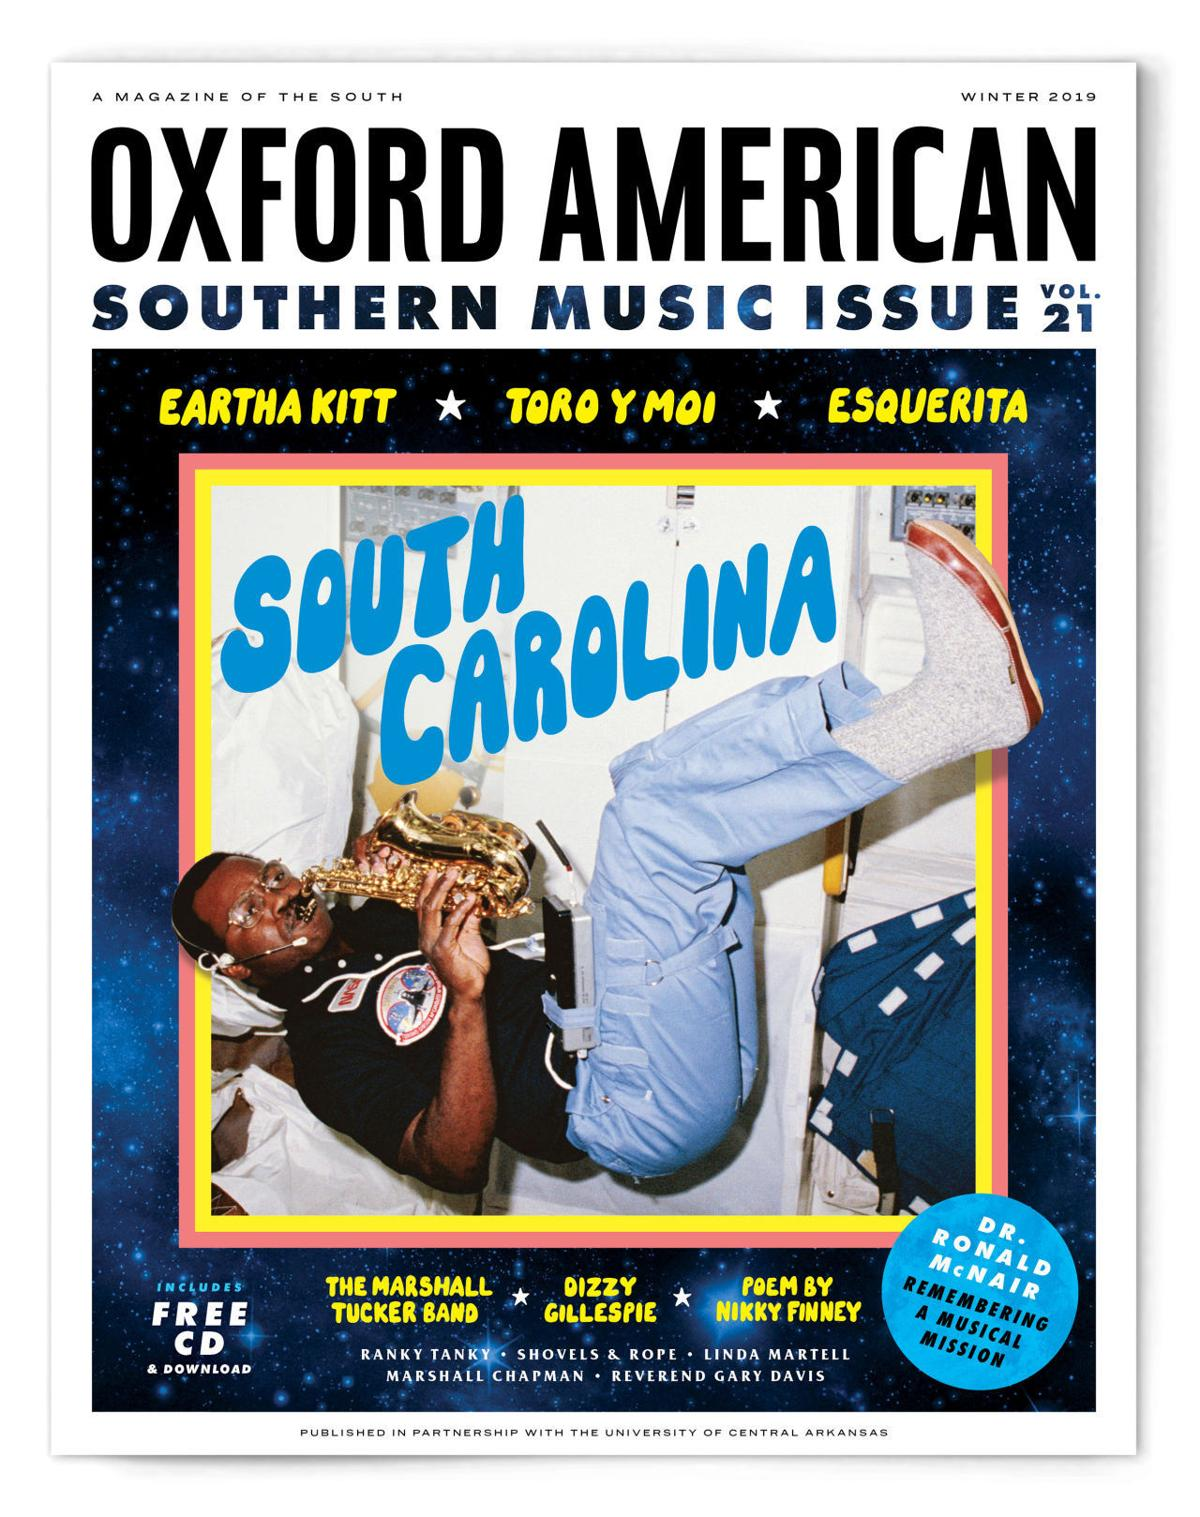 Oxford American magazine's 2019 Southern Music Issue